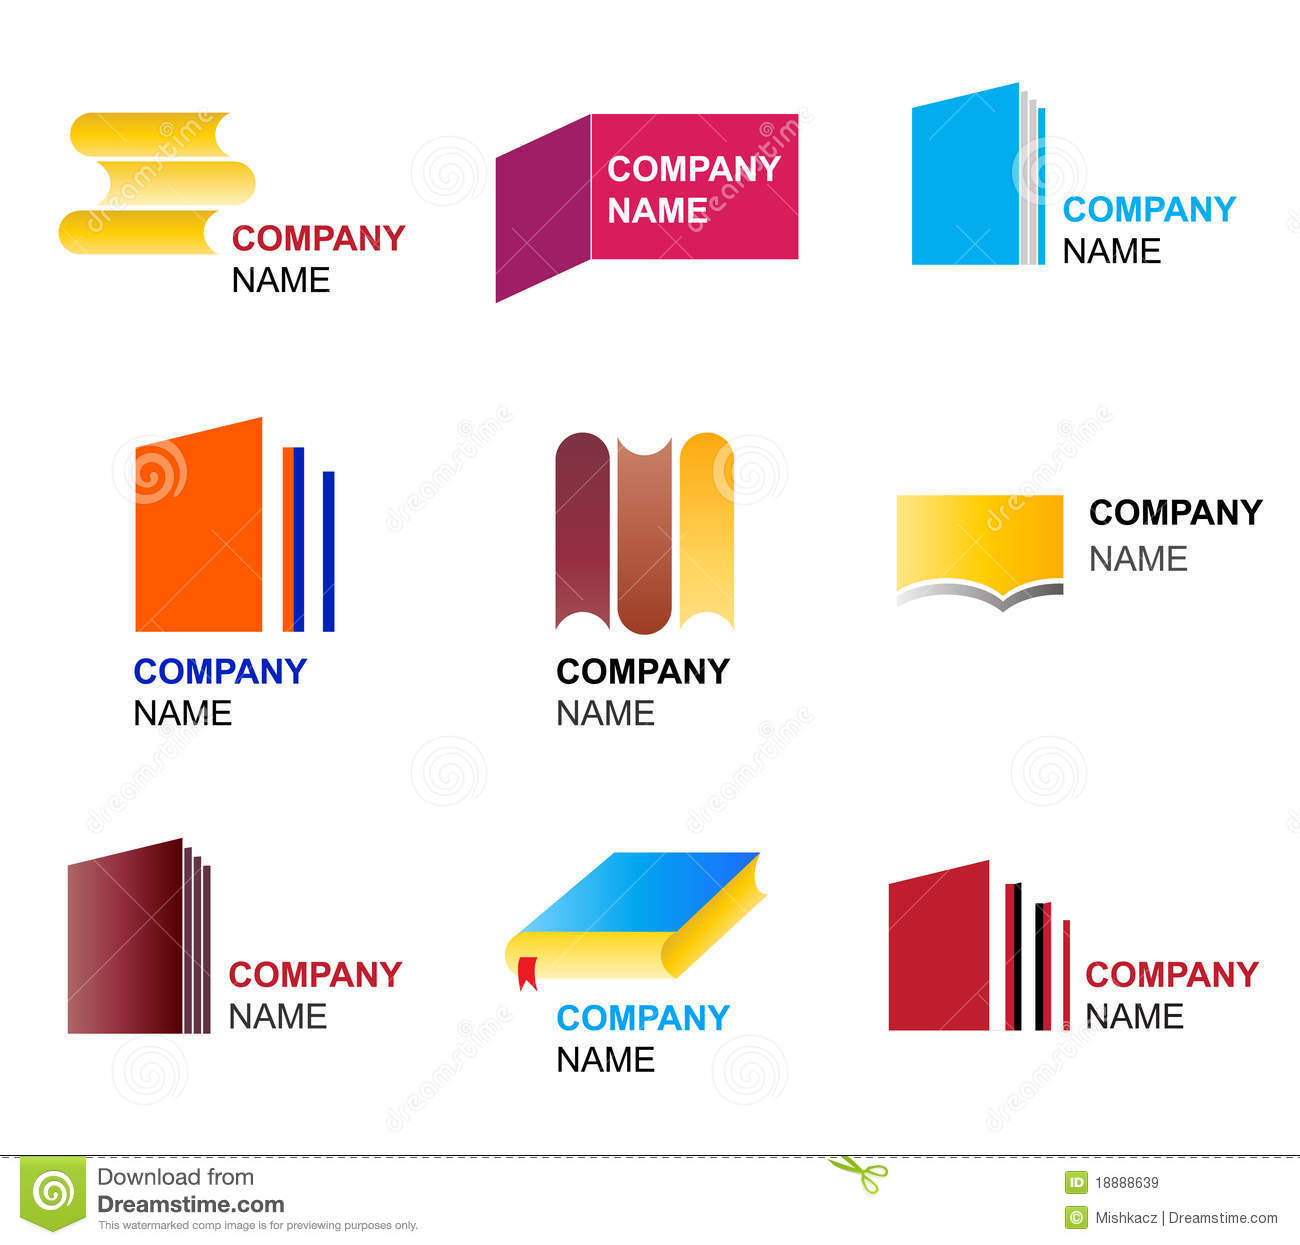 Book icon and logo designs stock vector. Image of high - 18888639